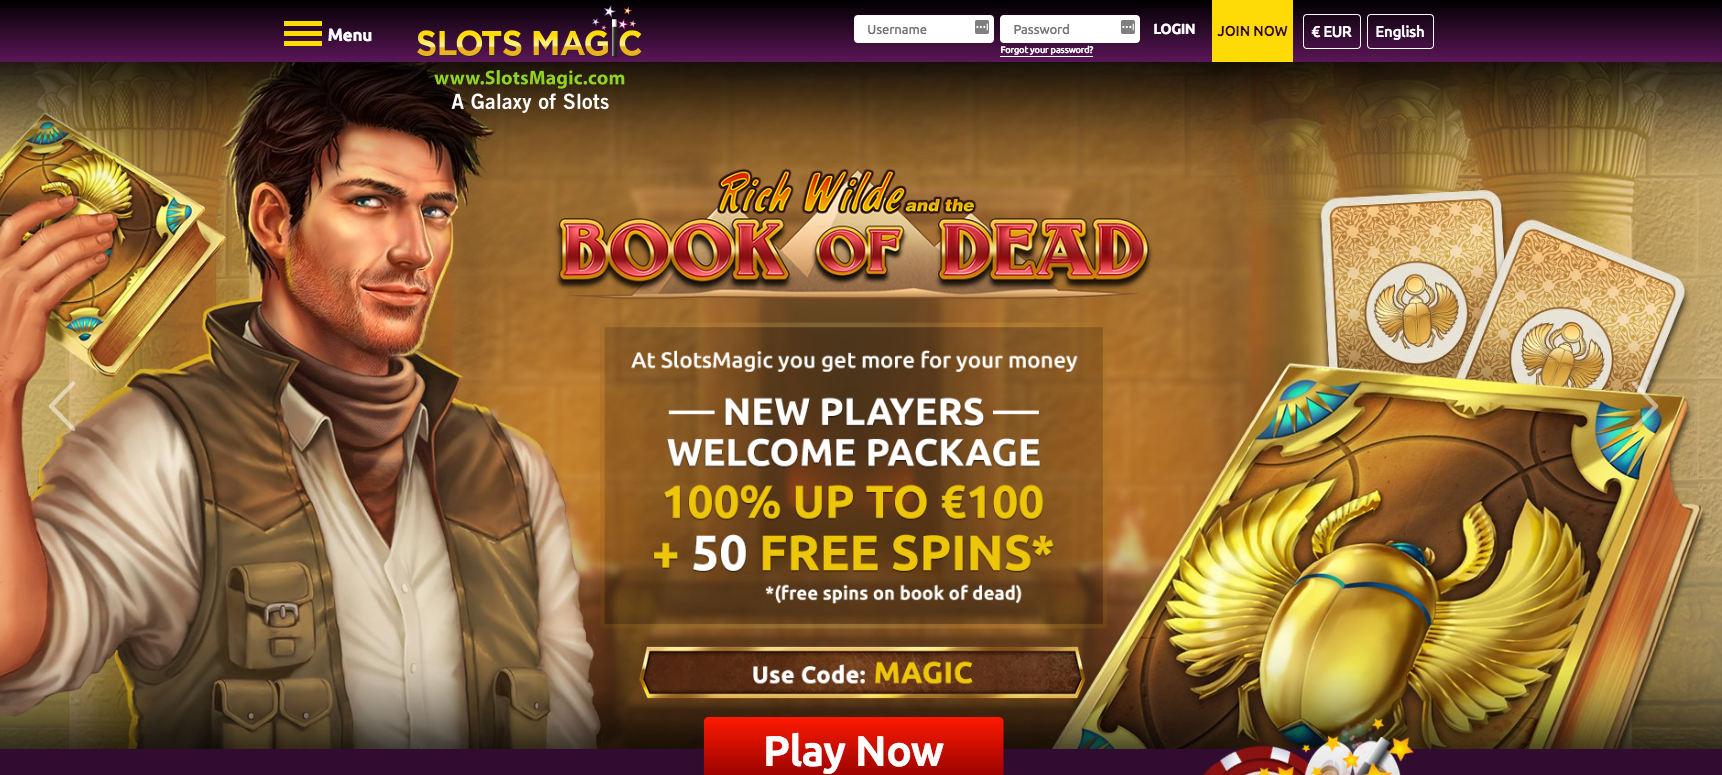 The Slotsmagic Casino Welcome Offer.